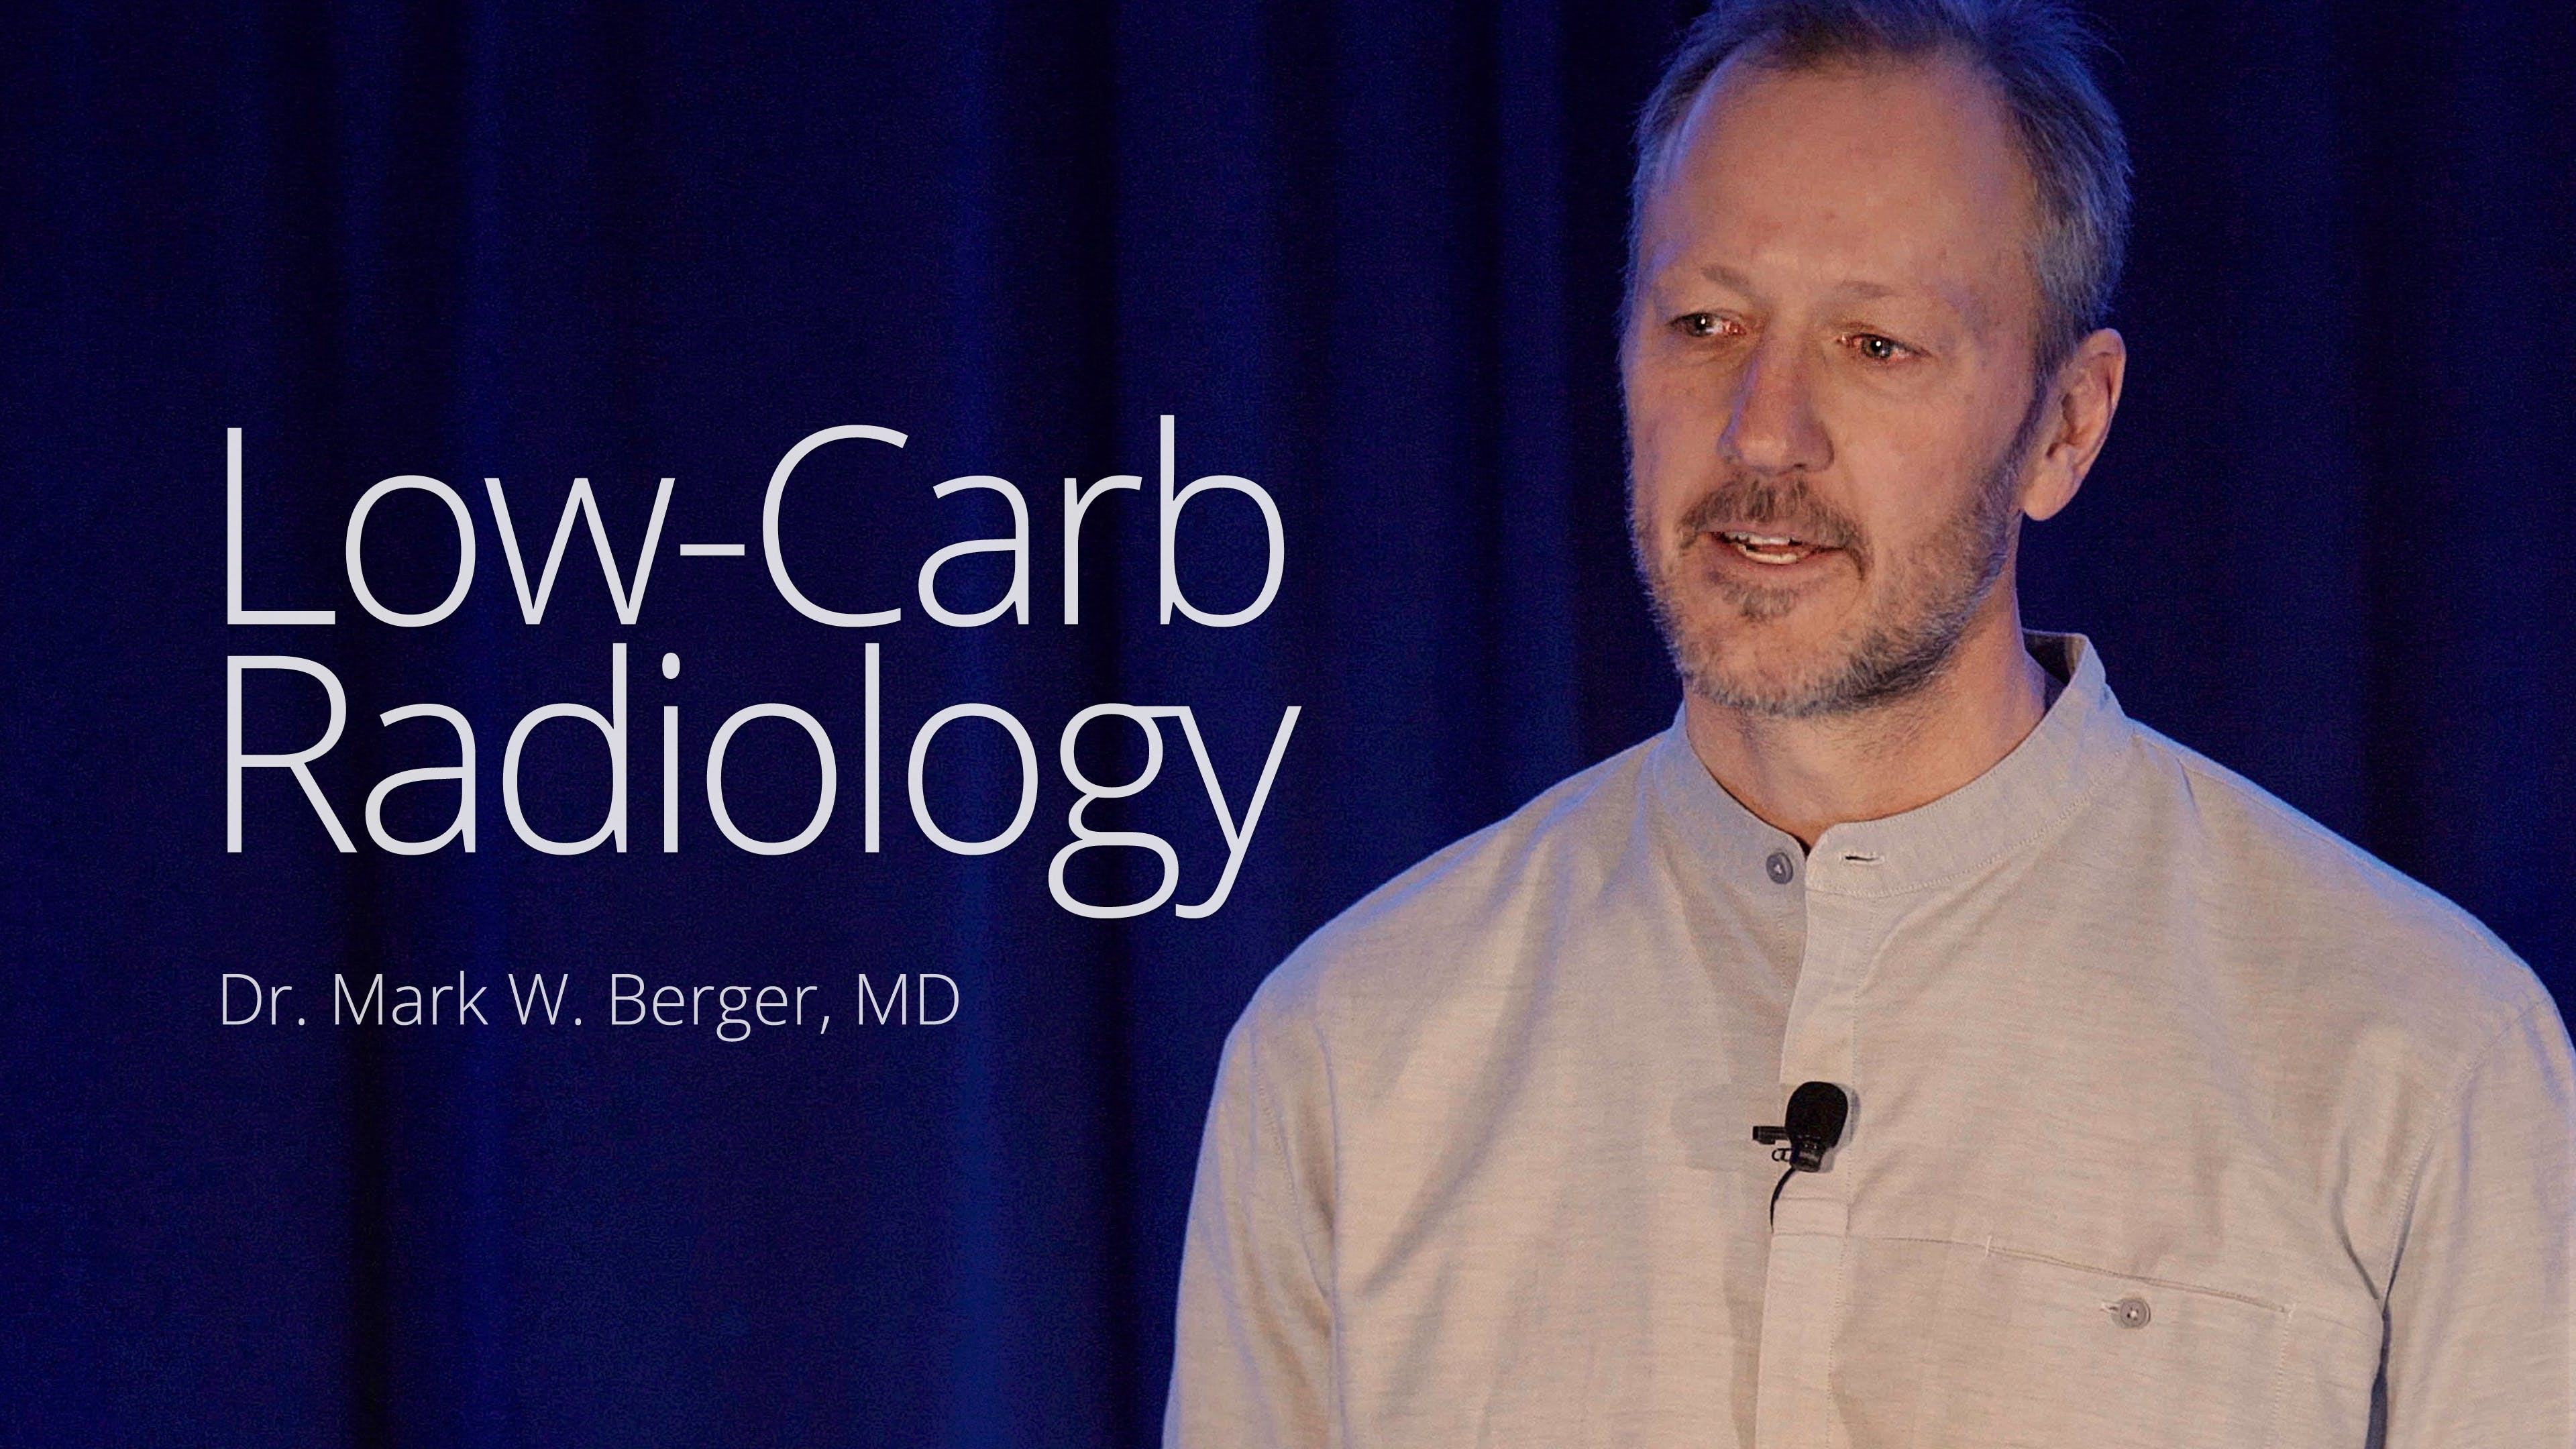 Low-carb radiology